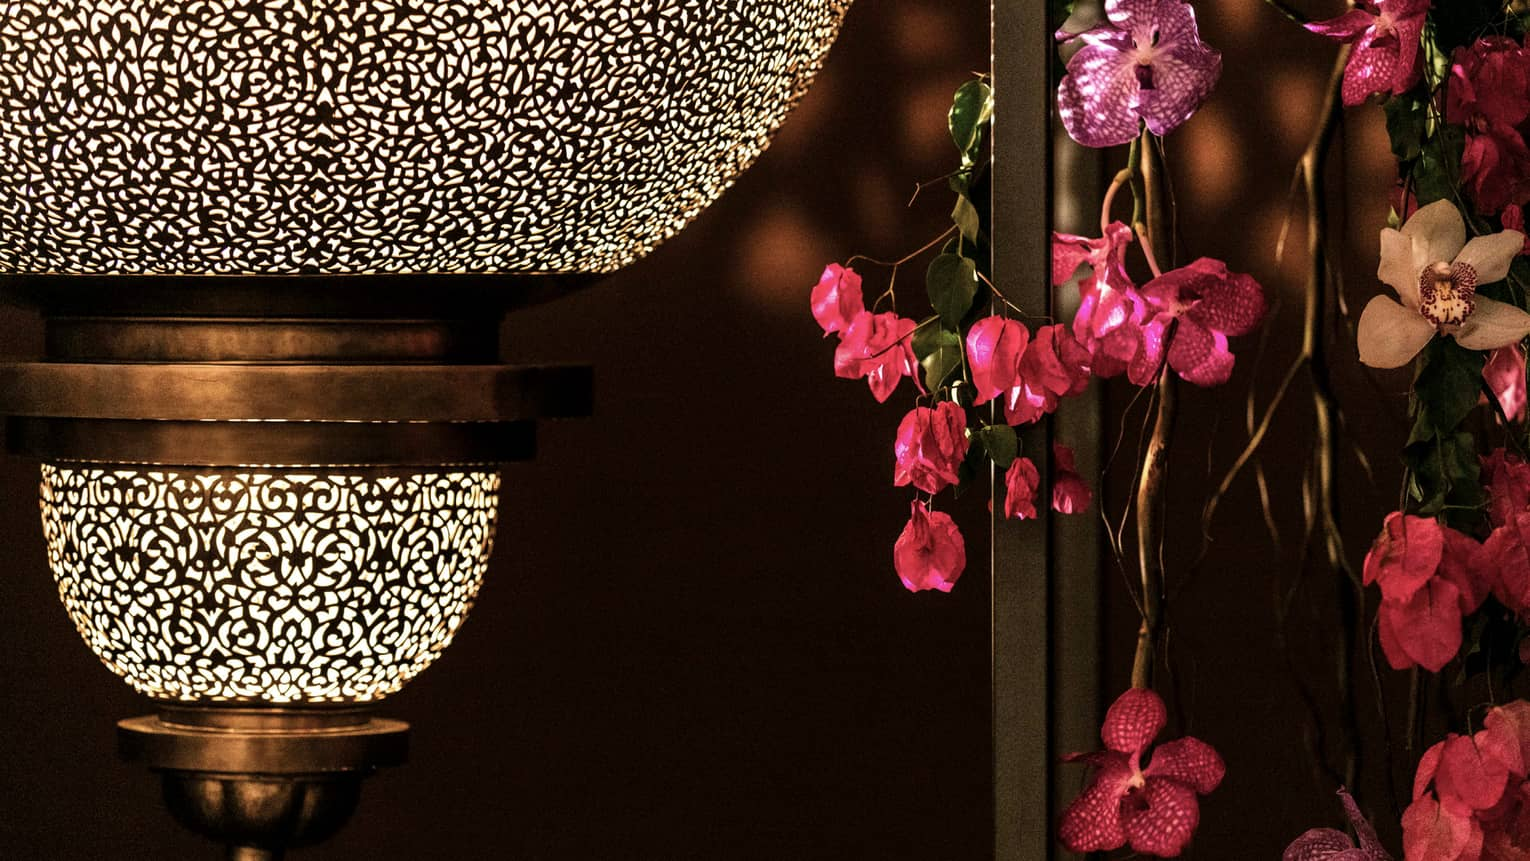 Close-up of Moroccan lantern, pink flowers in Atlantique Ballroom